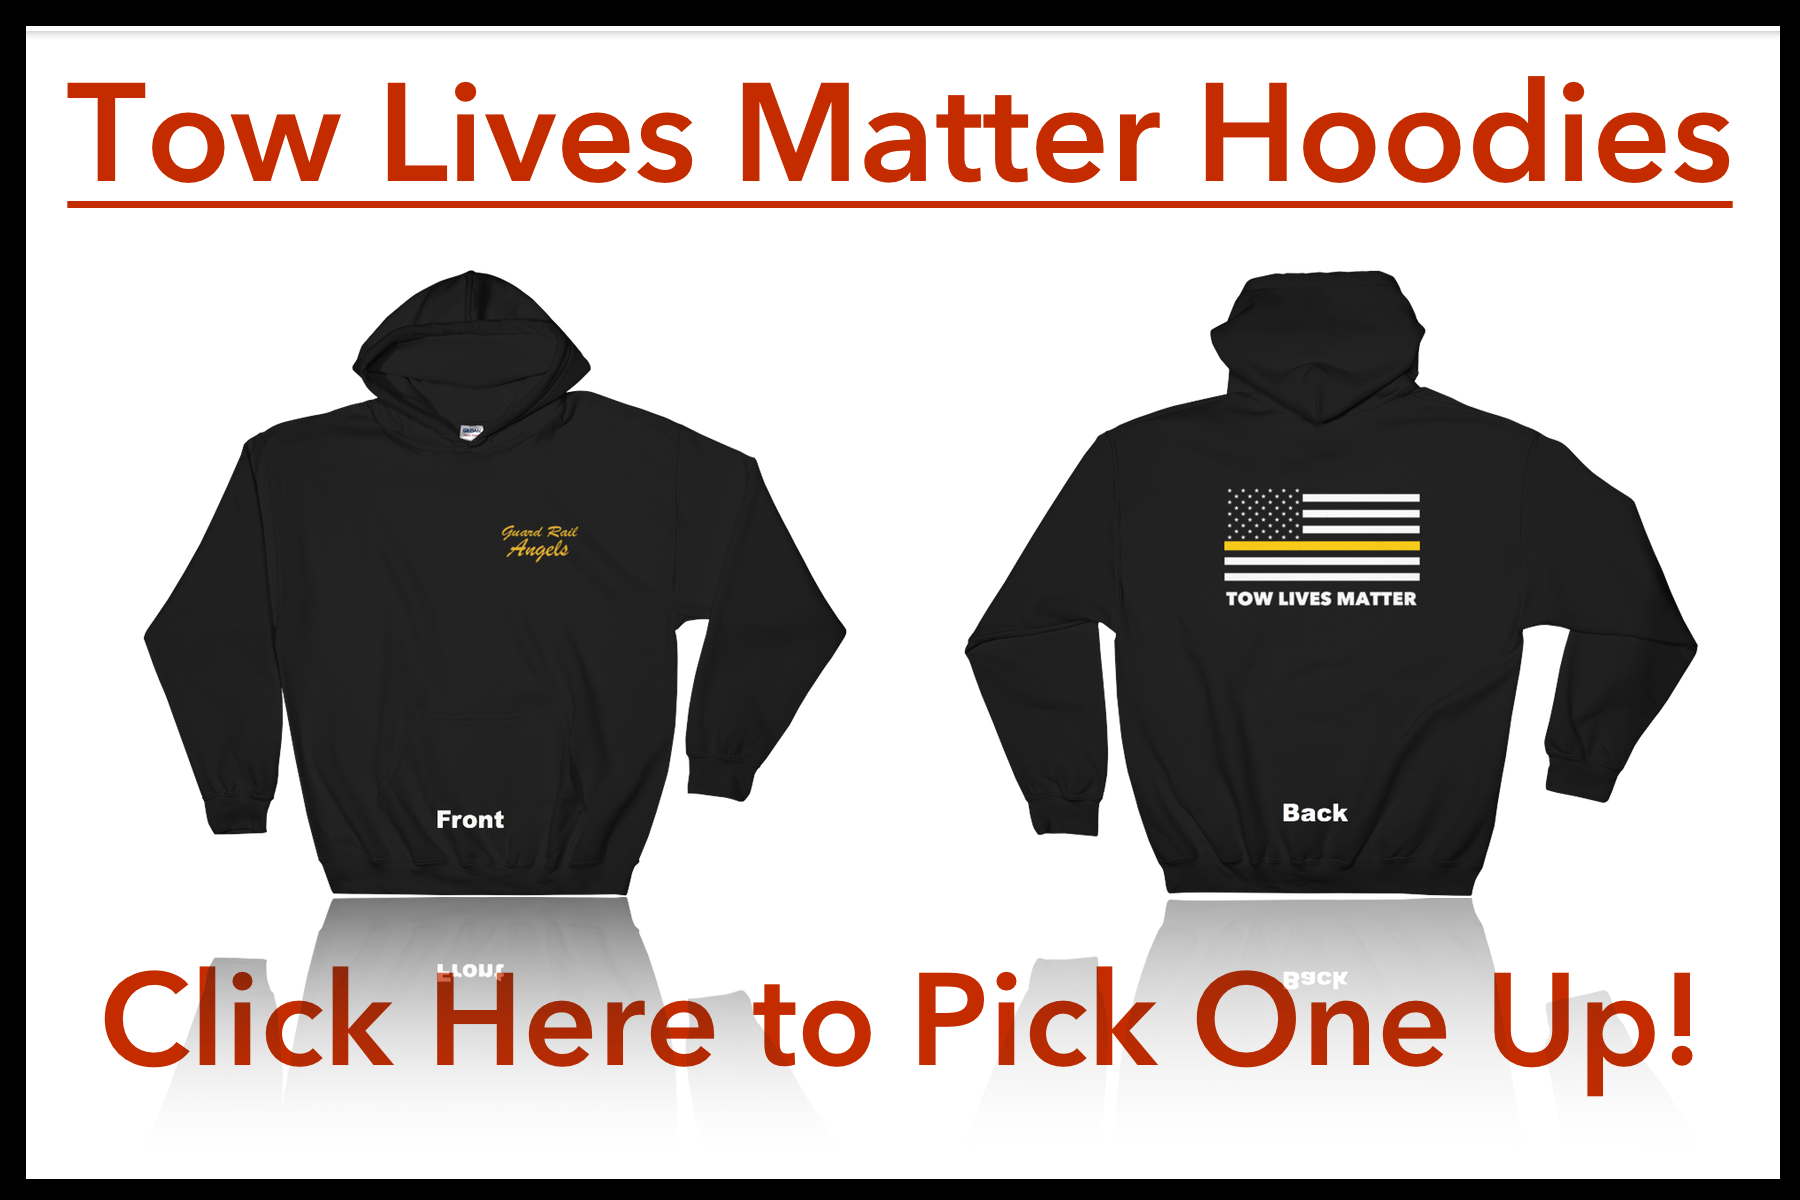 Tow Lives Matter Hoodie Click Here!